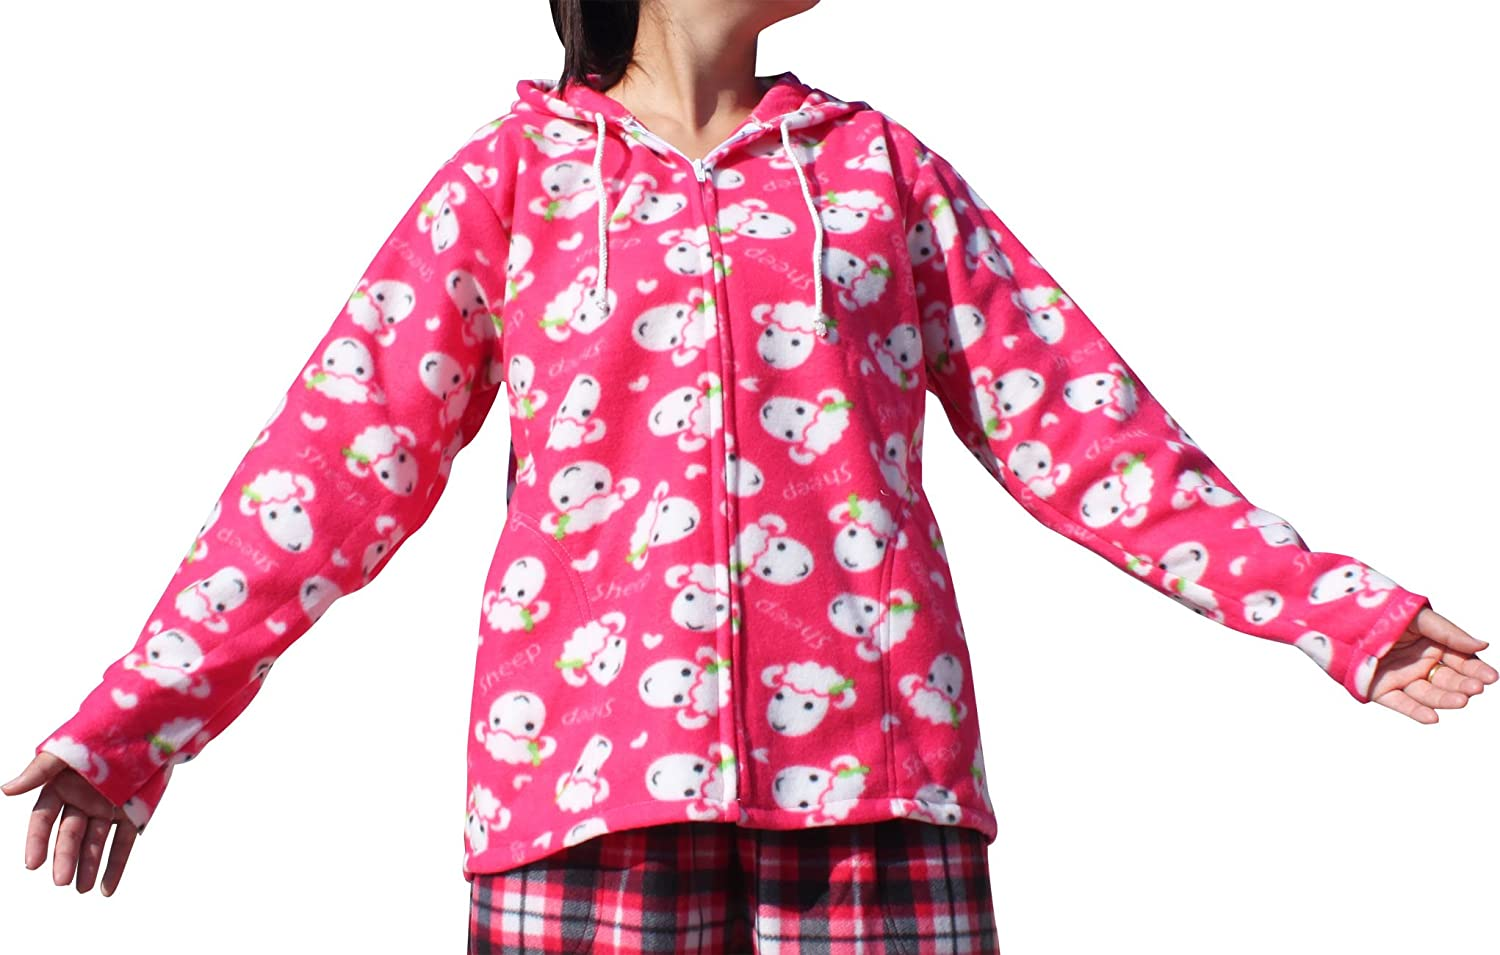 Full Funk Light Thin Polar Fleece Winter Inside Jacket Hoody Pijama Top